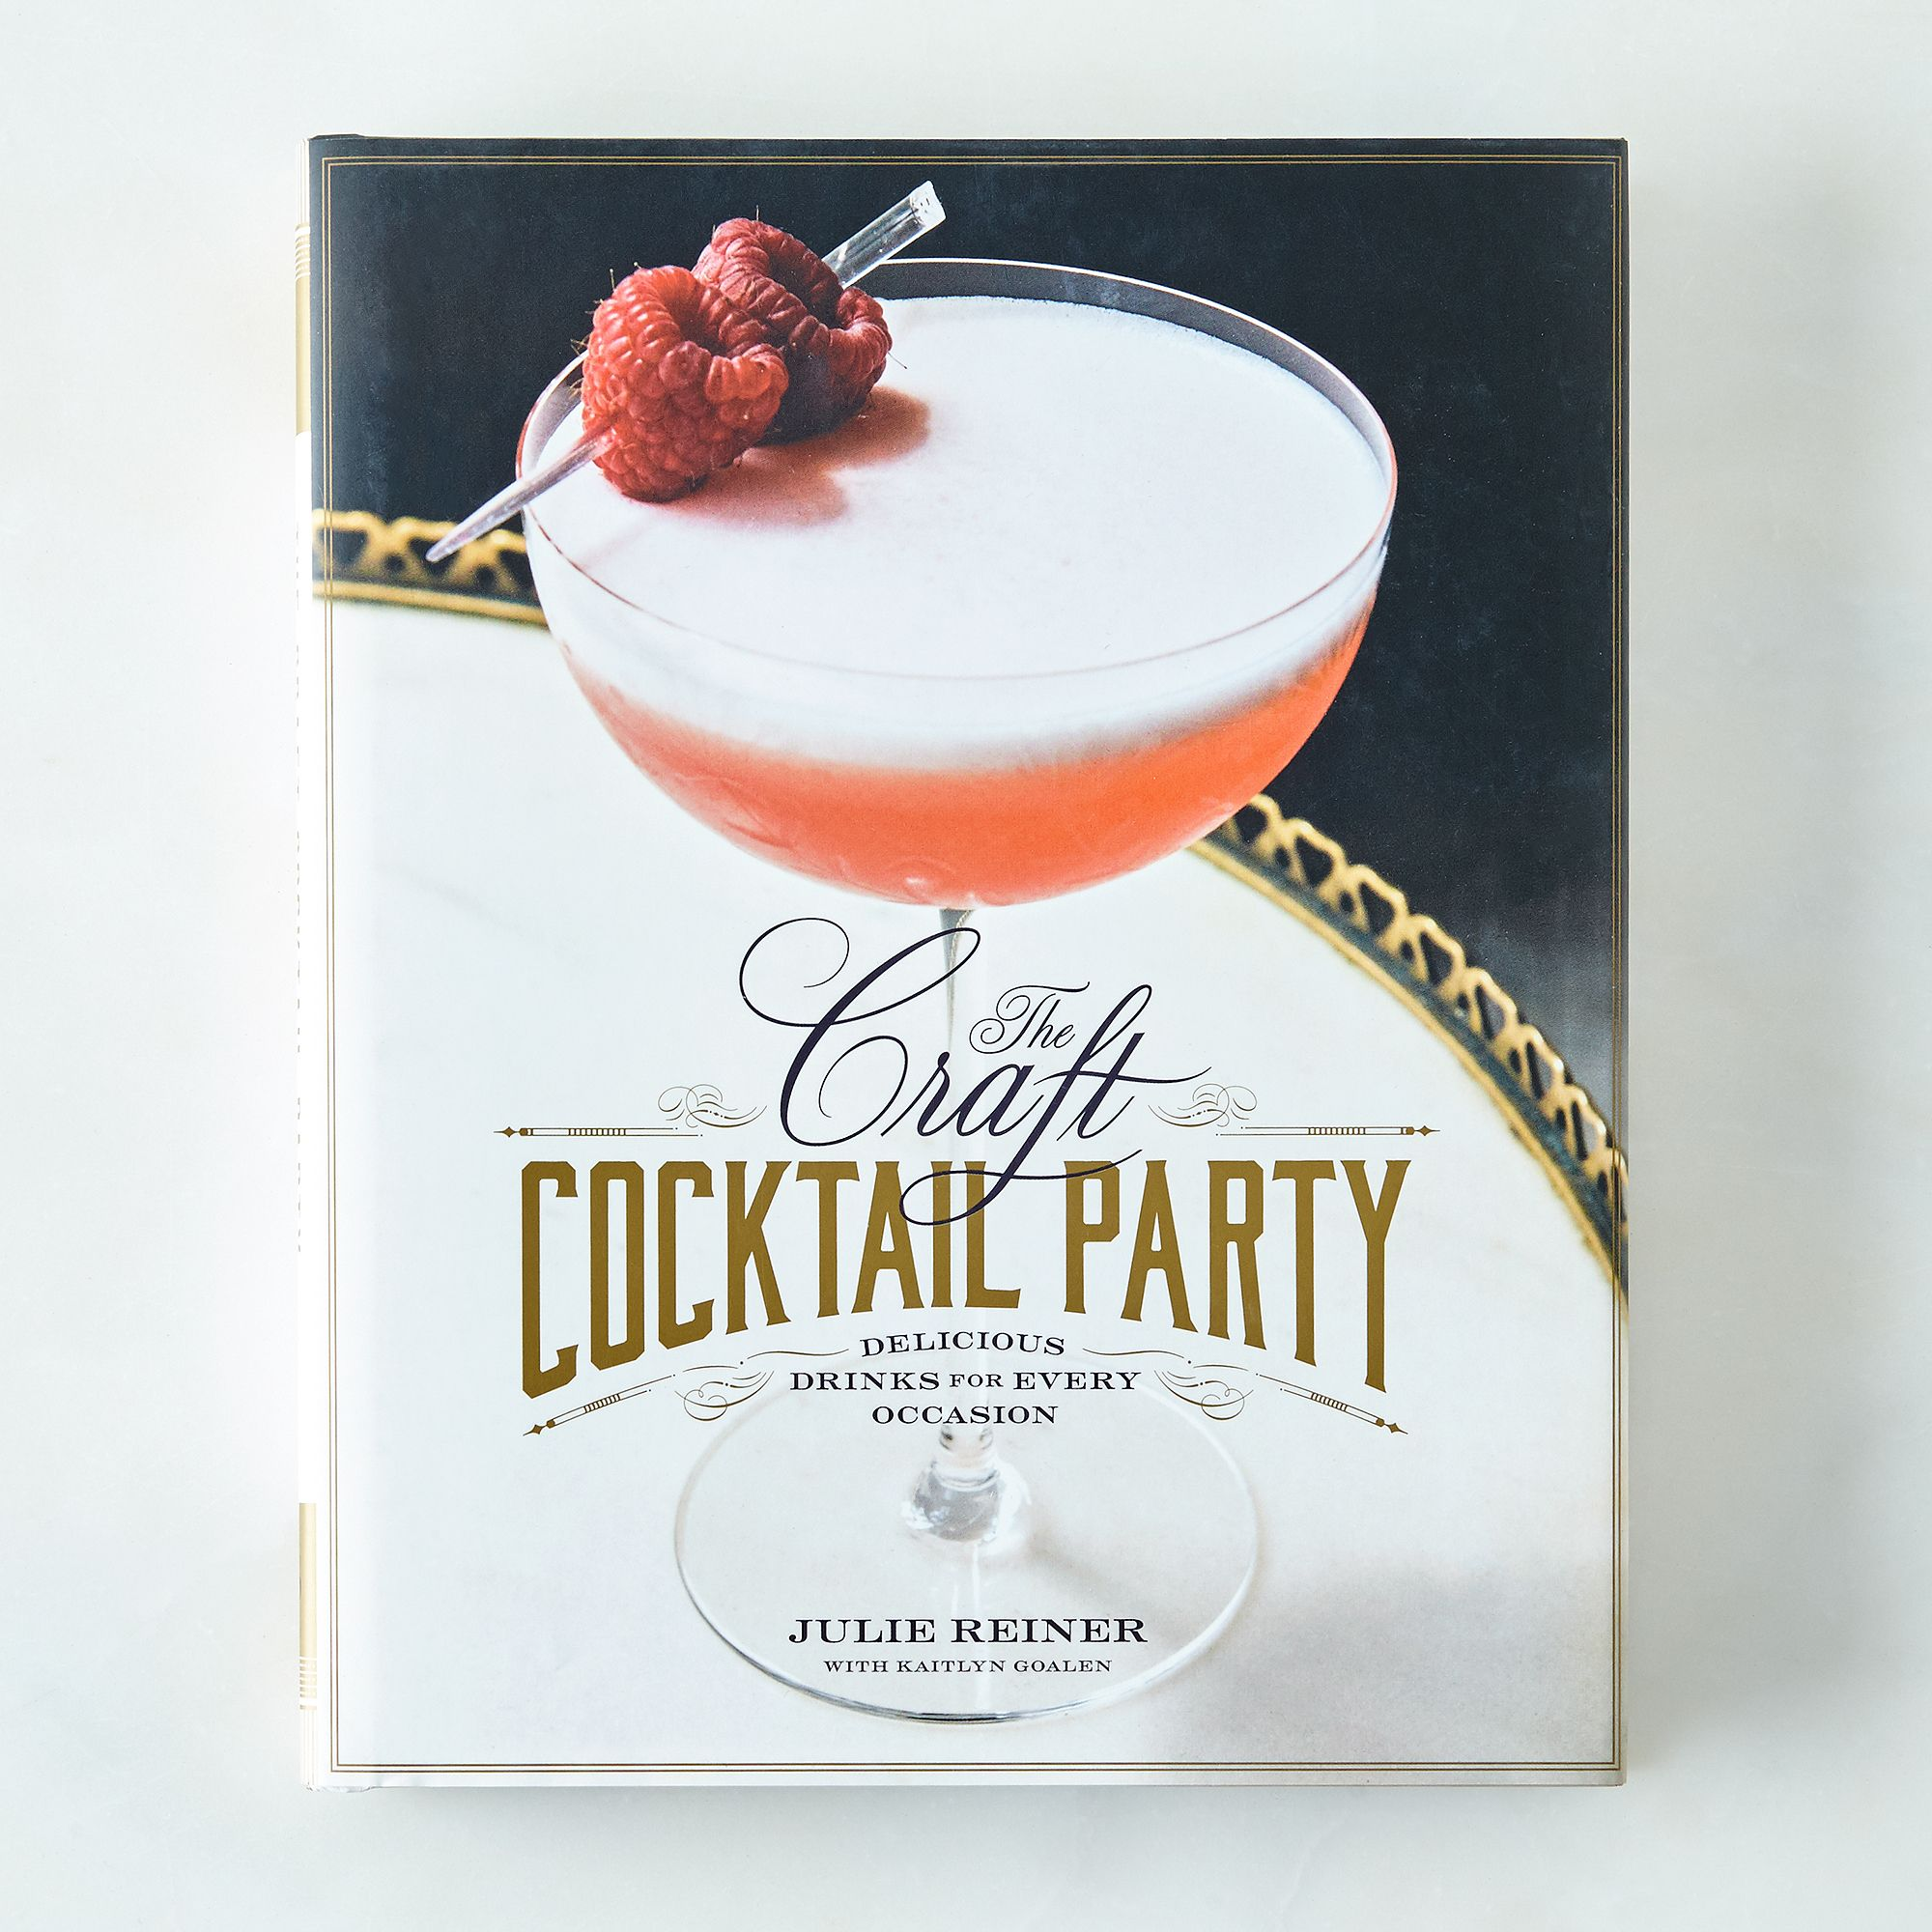 C529eedc a9bf 4e66 9322 fc2cd07e565c  2015 1027 hachette the craft cocktail party book silo rocky luten 006